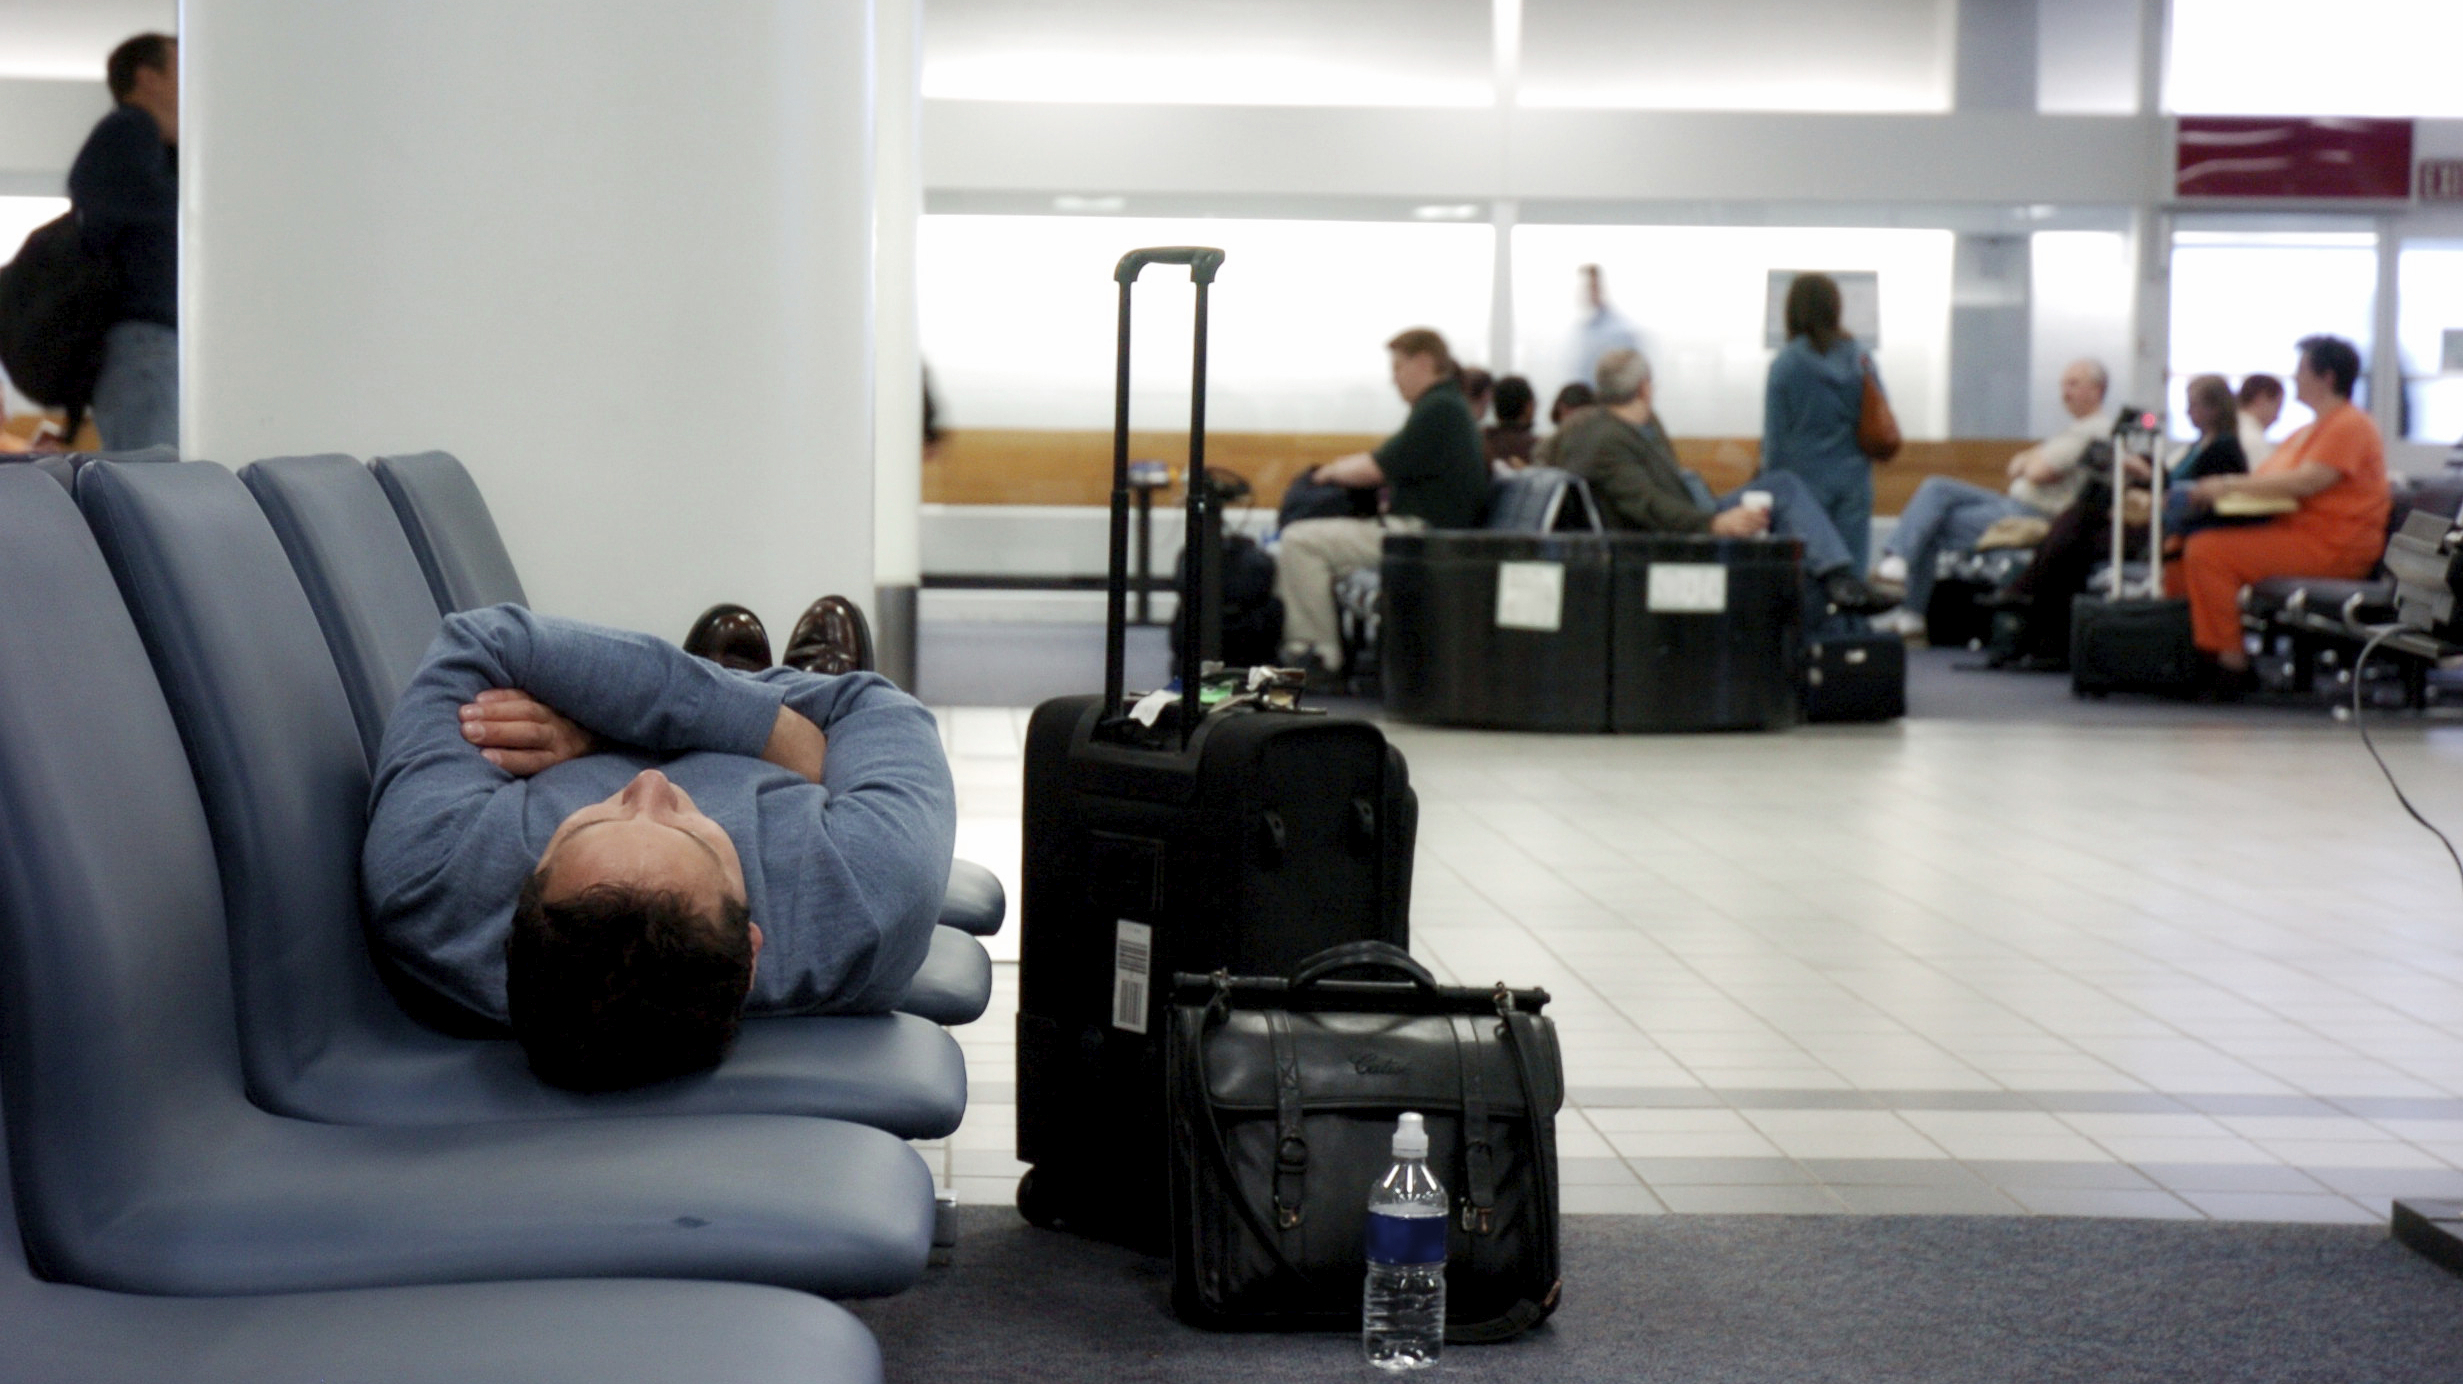 This Jet Lag App Does The Math So You'll Feel Better Faster